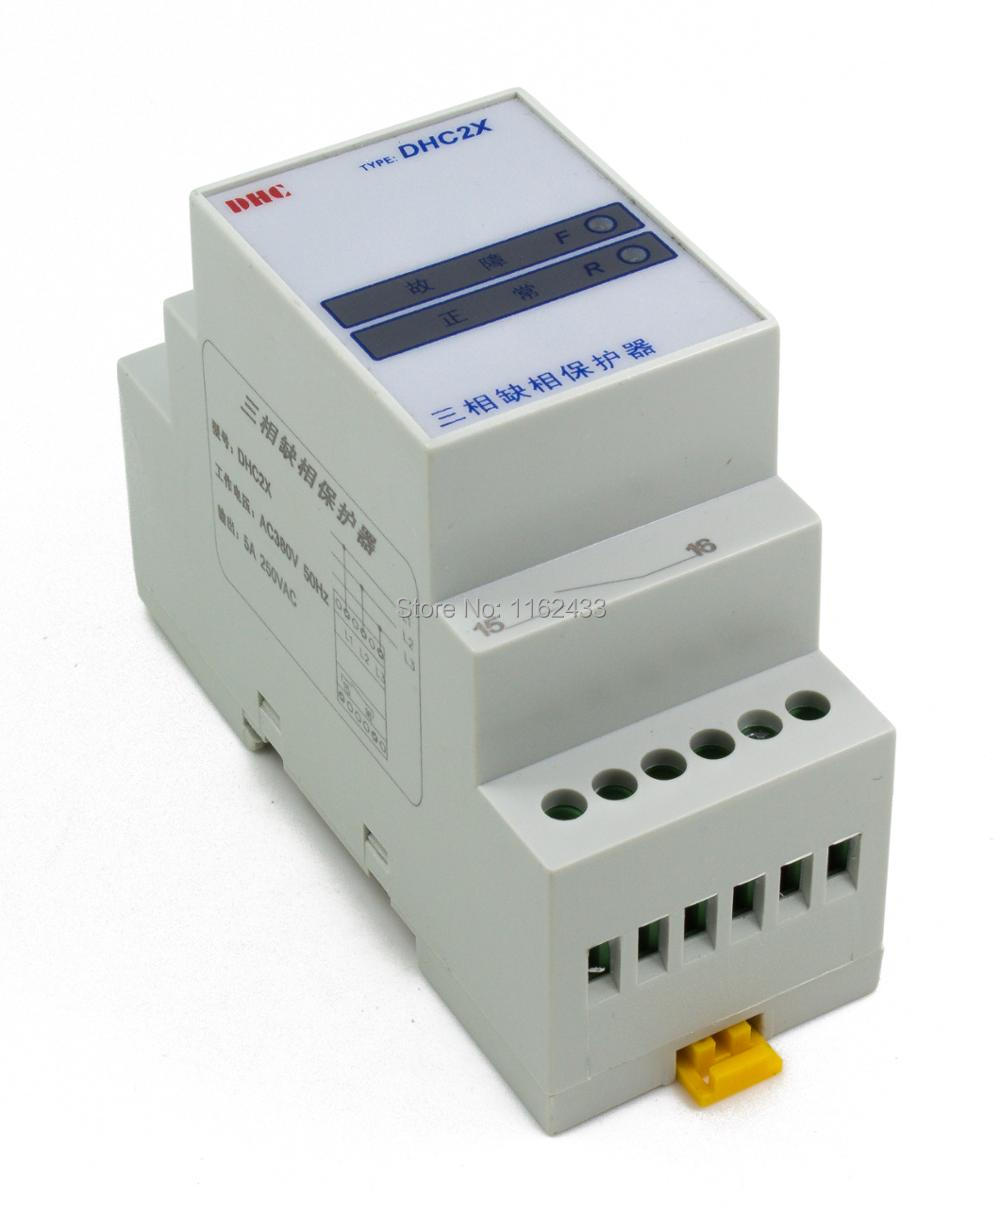 Mk 06 Phase Failure Relay The Protection From Simple Diagram Dhc2x Sequence Loss Three Supply Control